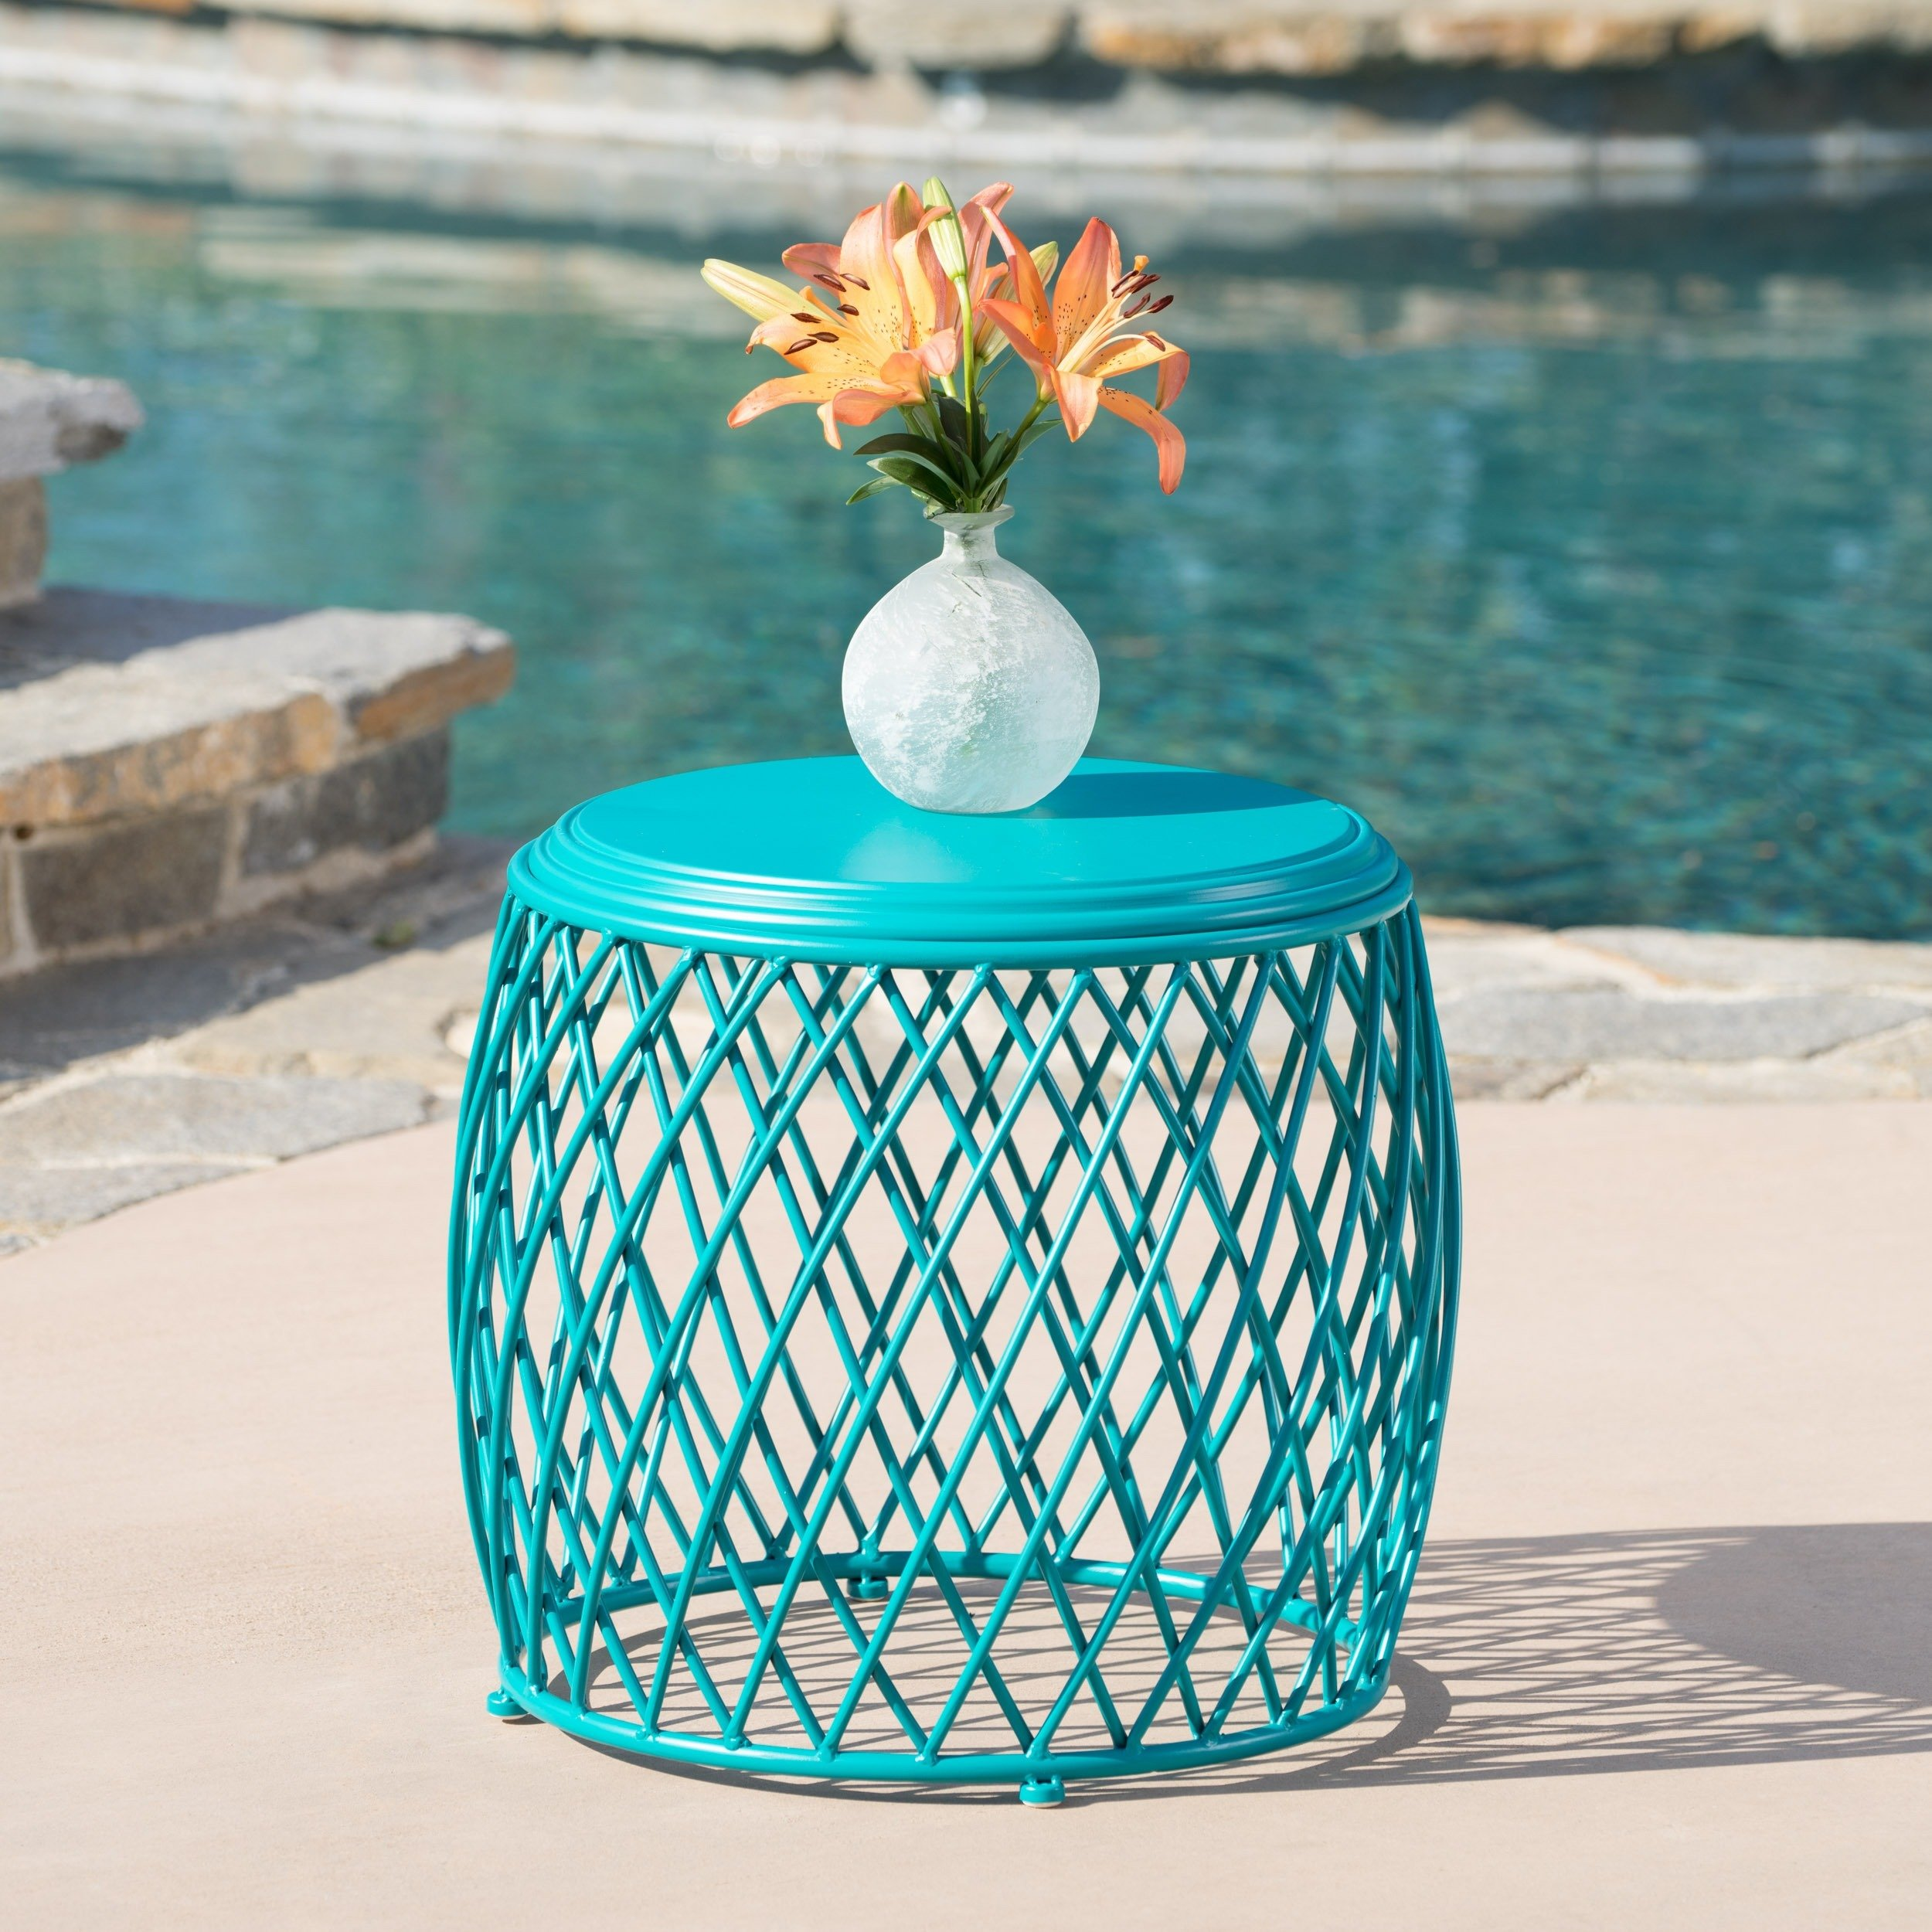 outdoor coffee side tables our best alamera inch lattice table christopher knight home drum accent patio furniture mango wood cordless lamps diy end plans bunching astoria unique